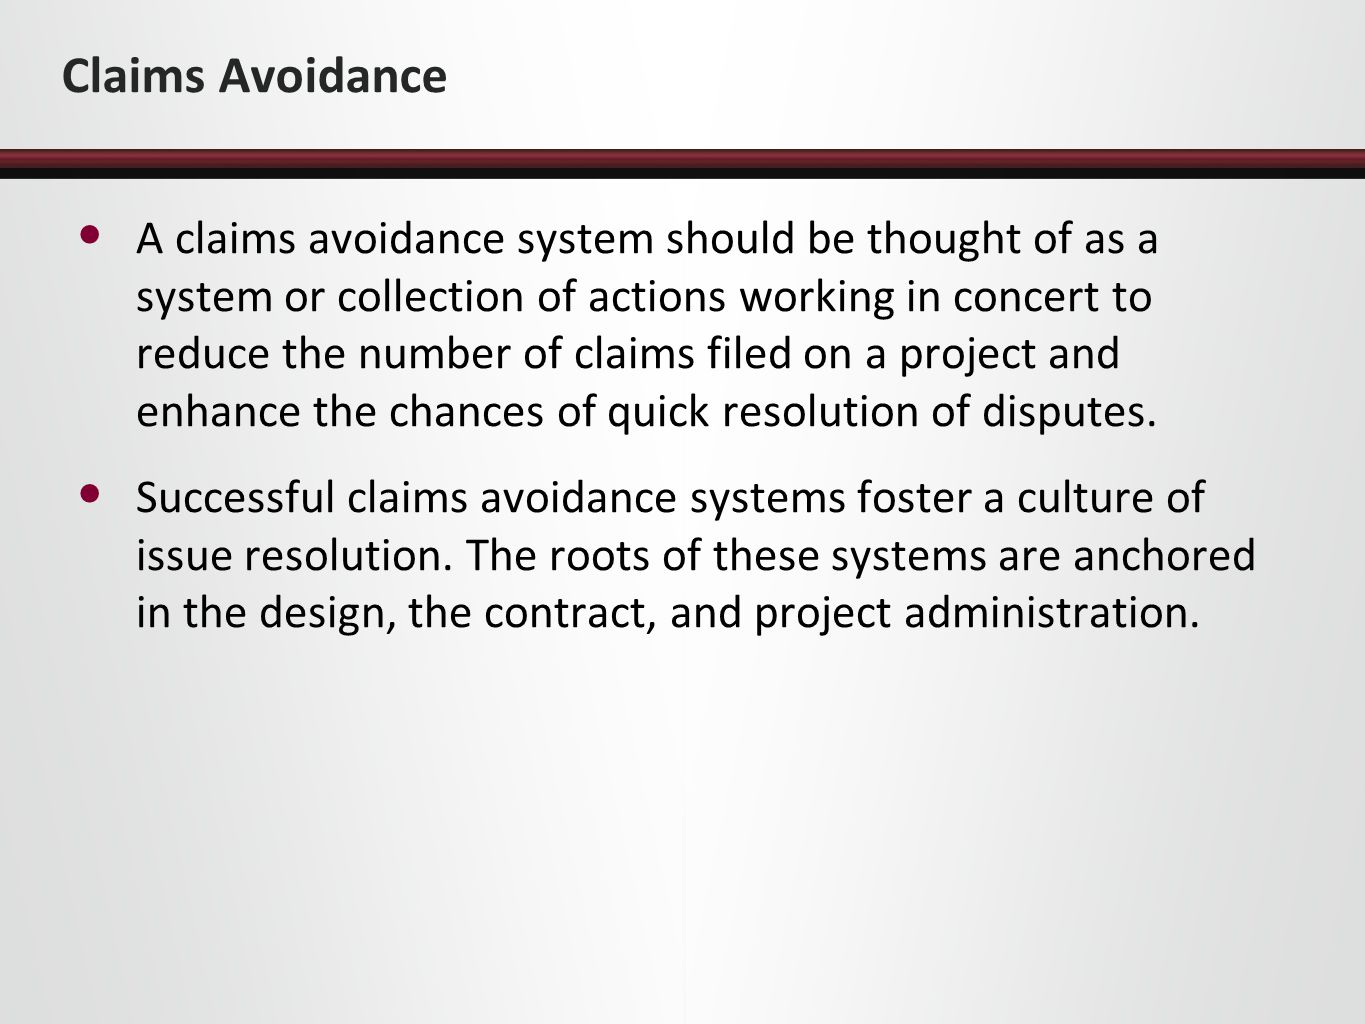 Claims Avoidance A claims avoidance system should be thought of as a system or collection of actions working in concert to reduce the number of claims